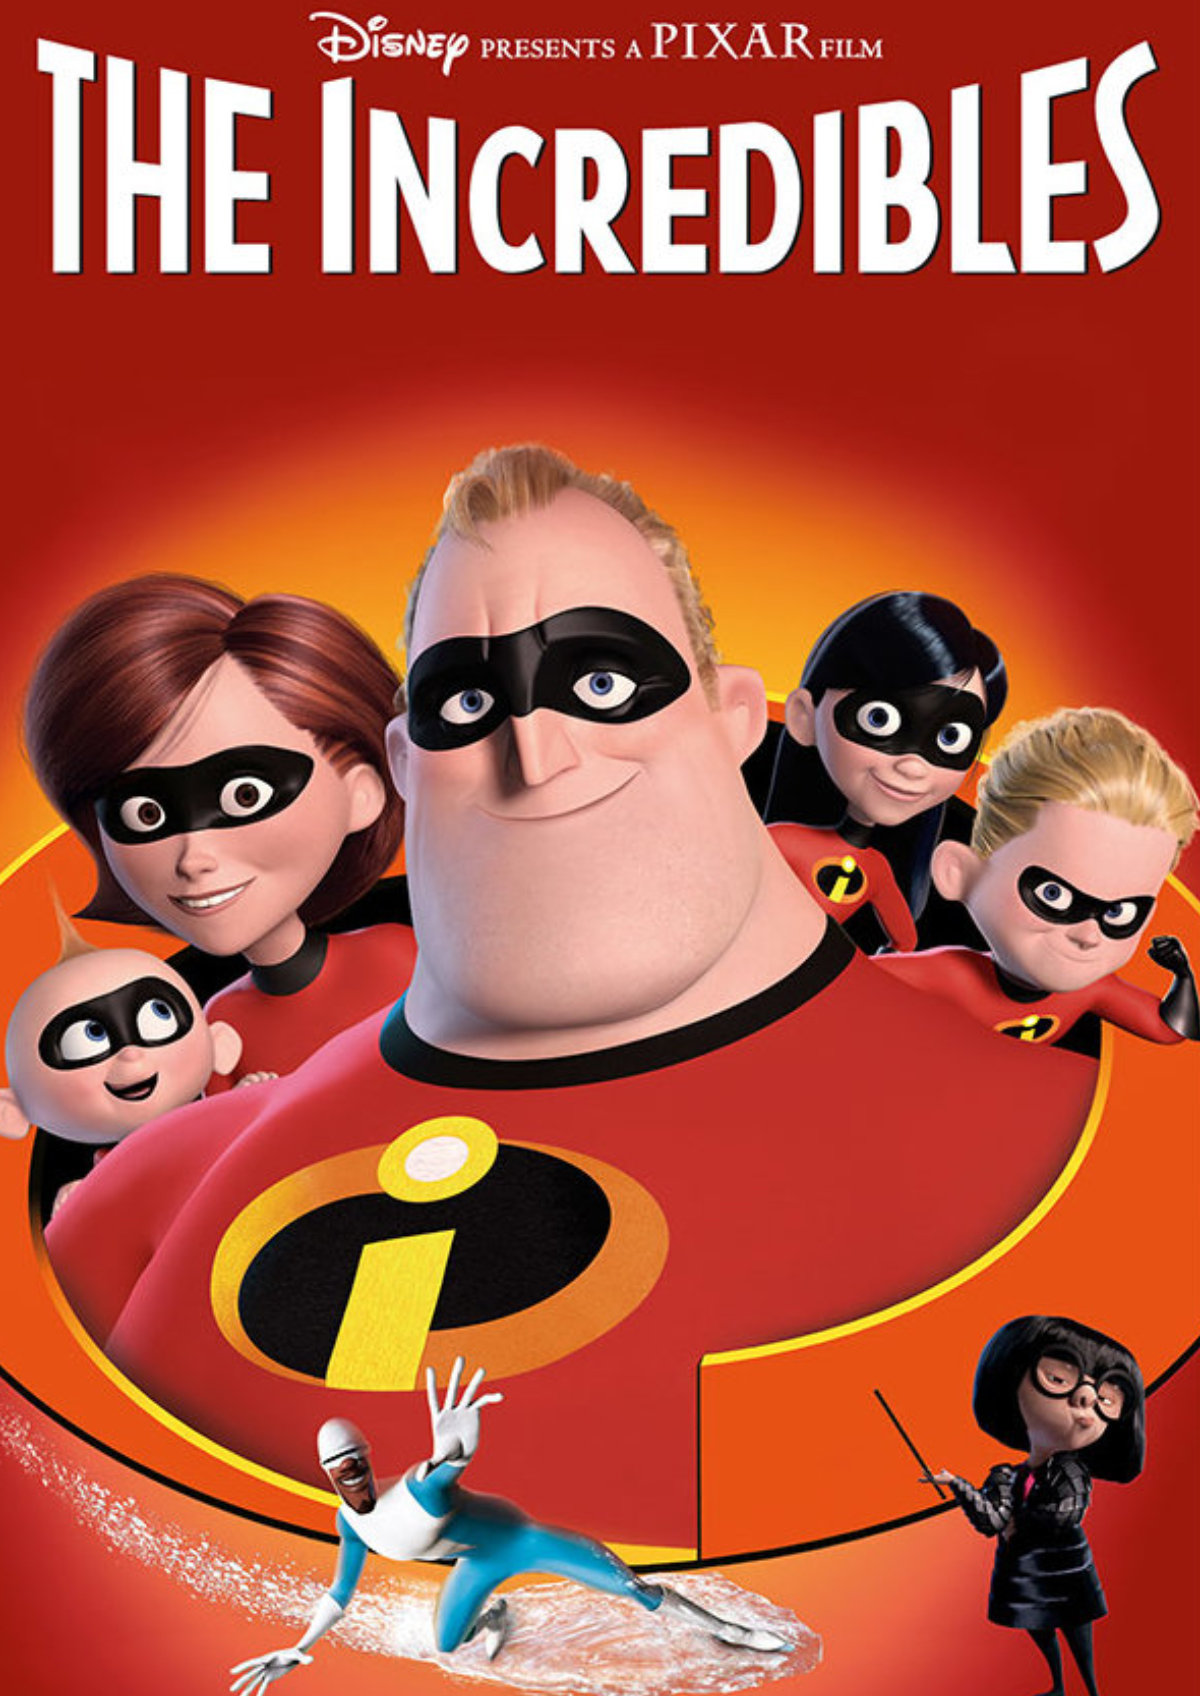 'The Incredibles' movie poster